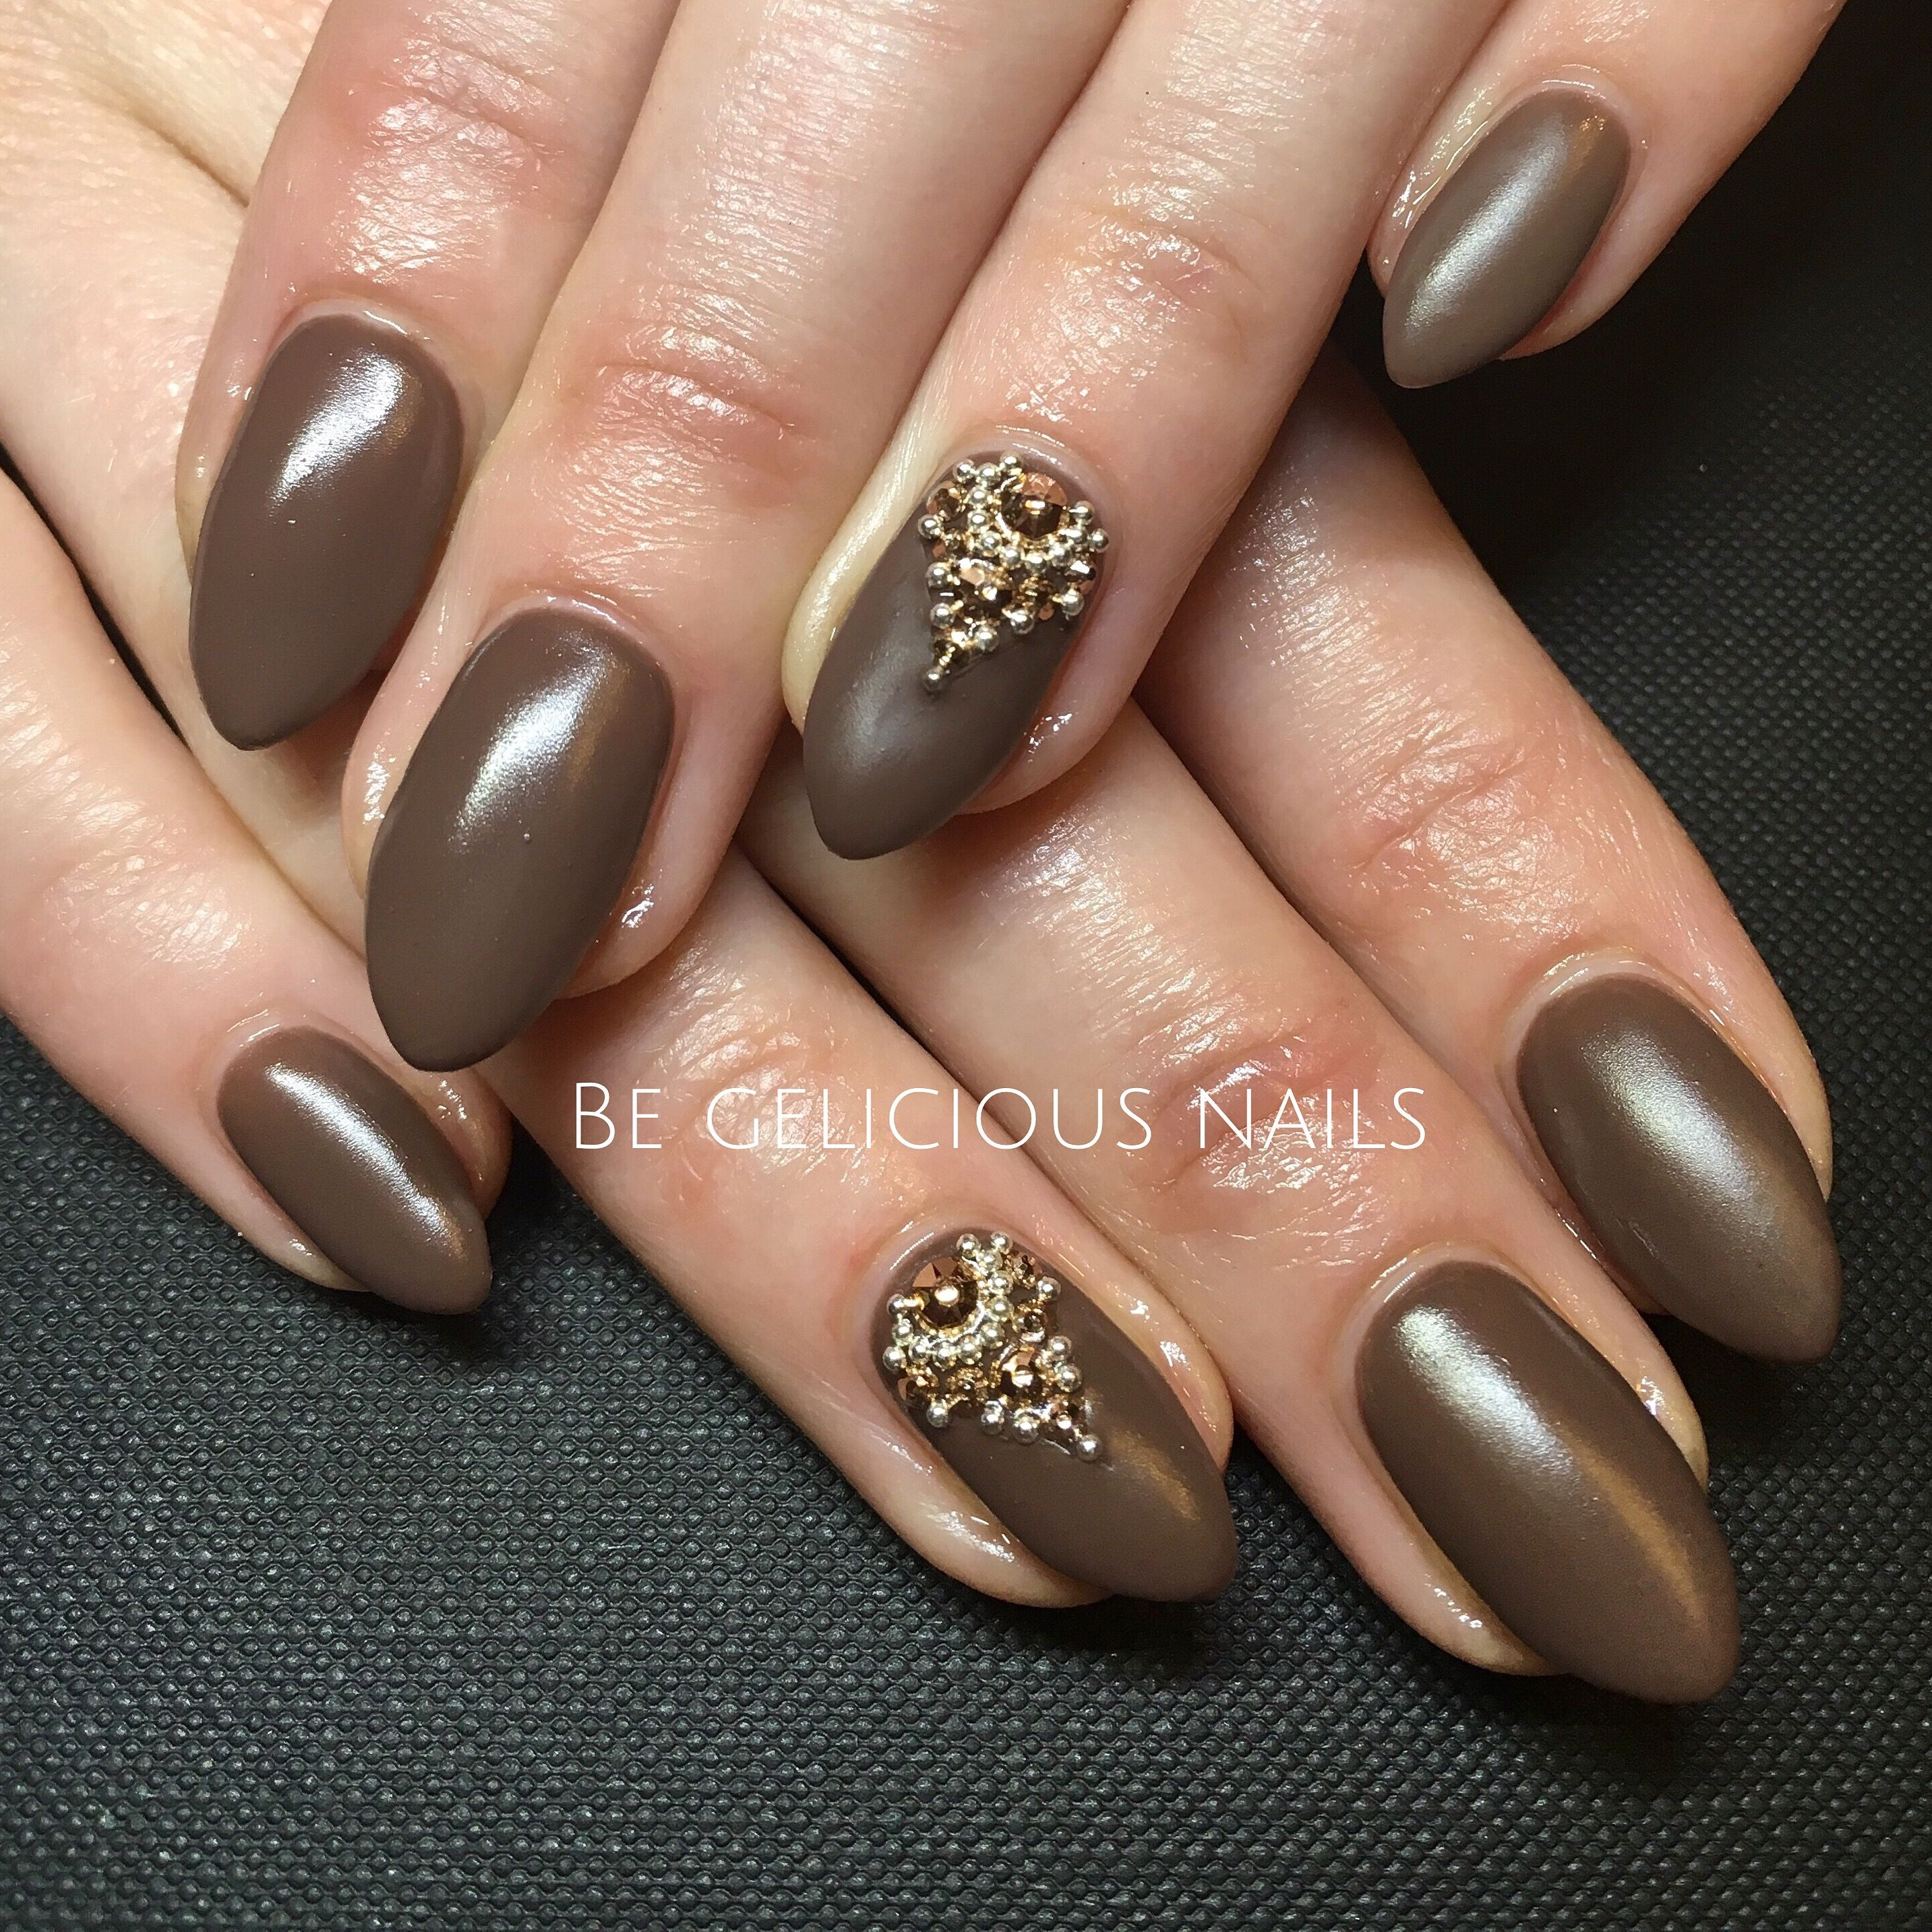 Calgel nails gel nail art nail design brown matte swarovski calgel nails gel nail art nail design brown matte swarovski prinsesfo Gallery